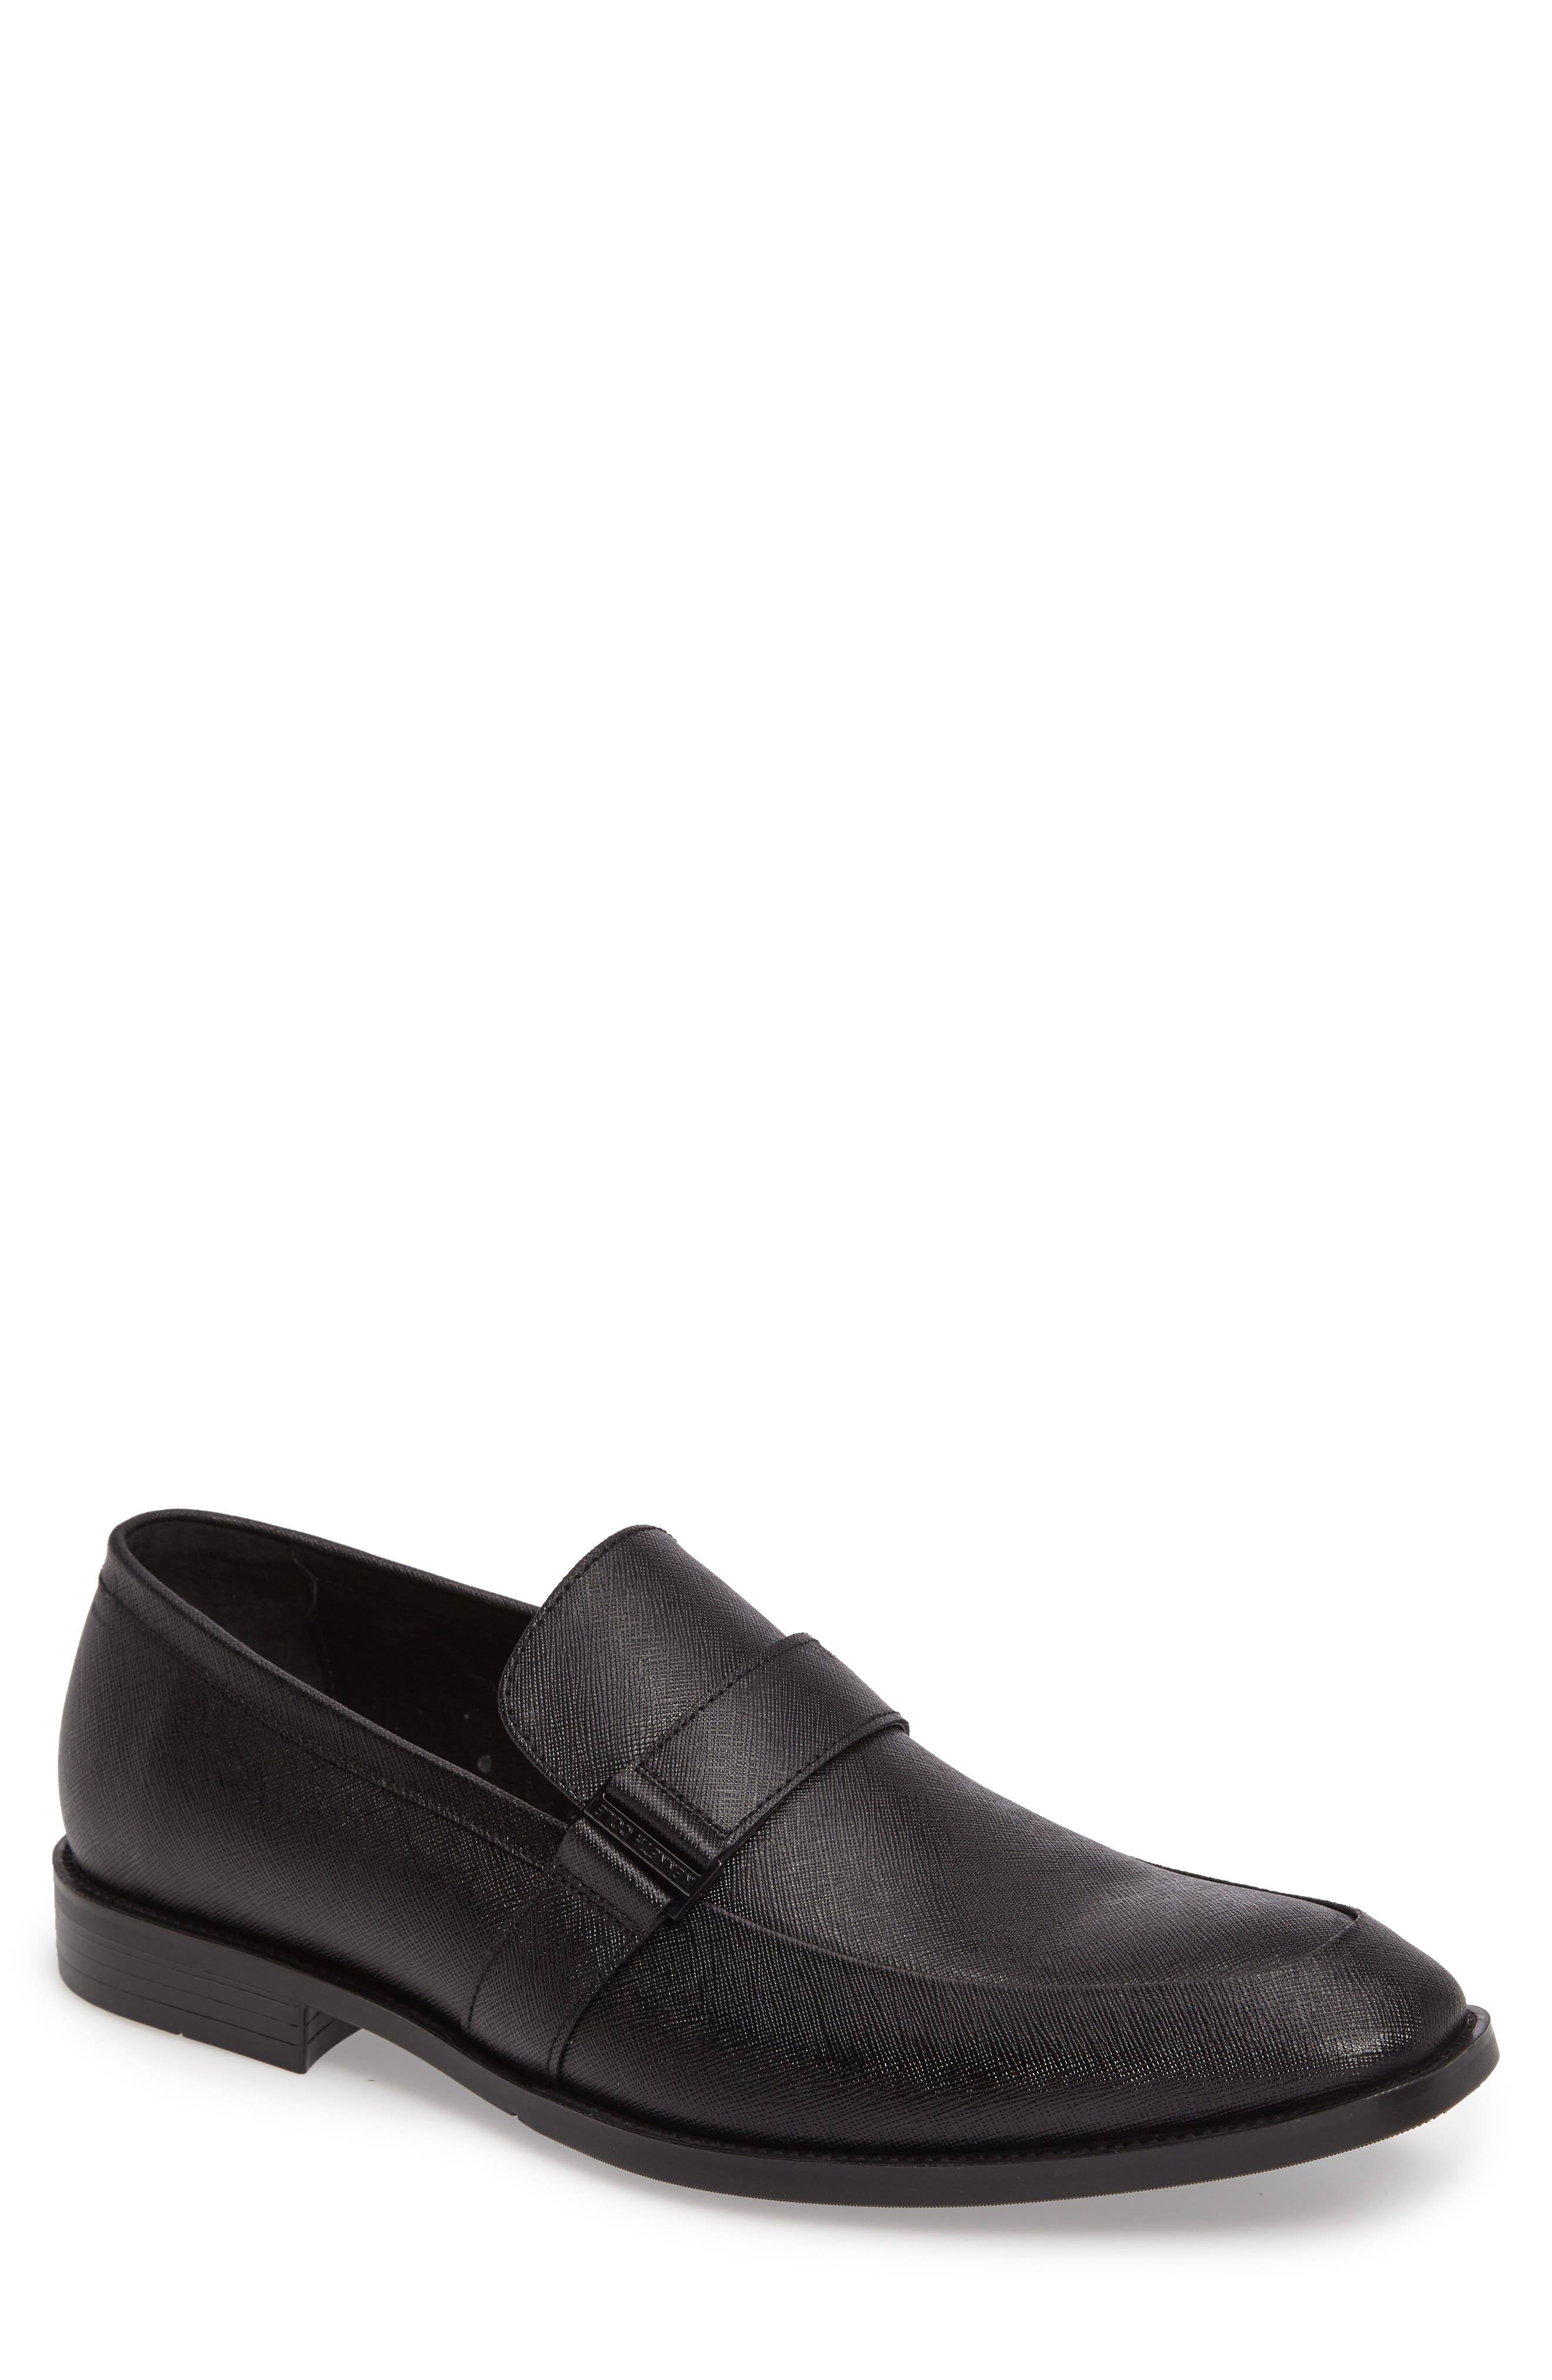 Major Ticket Loafer,                             Main thumbnail 1, color,                             Black Leather